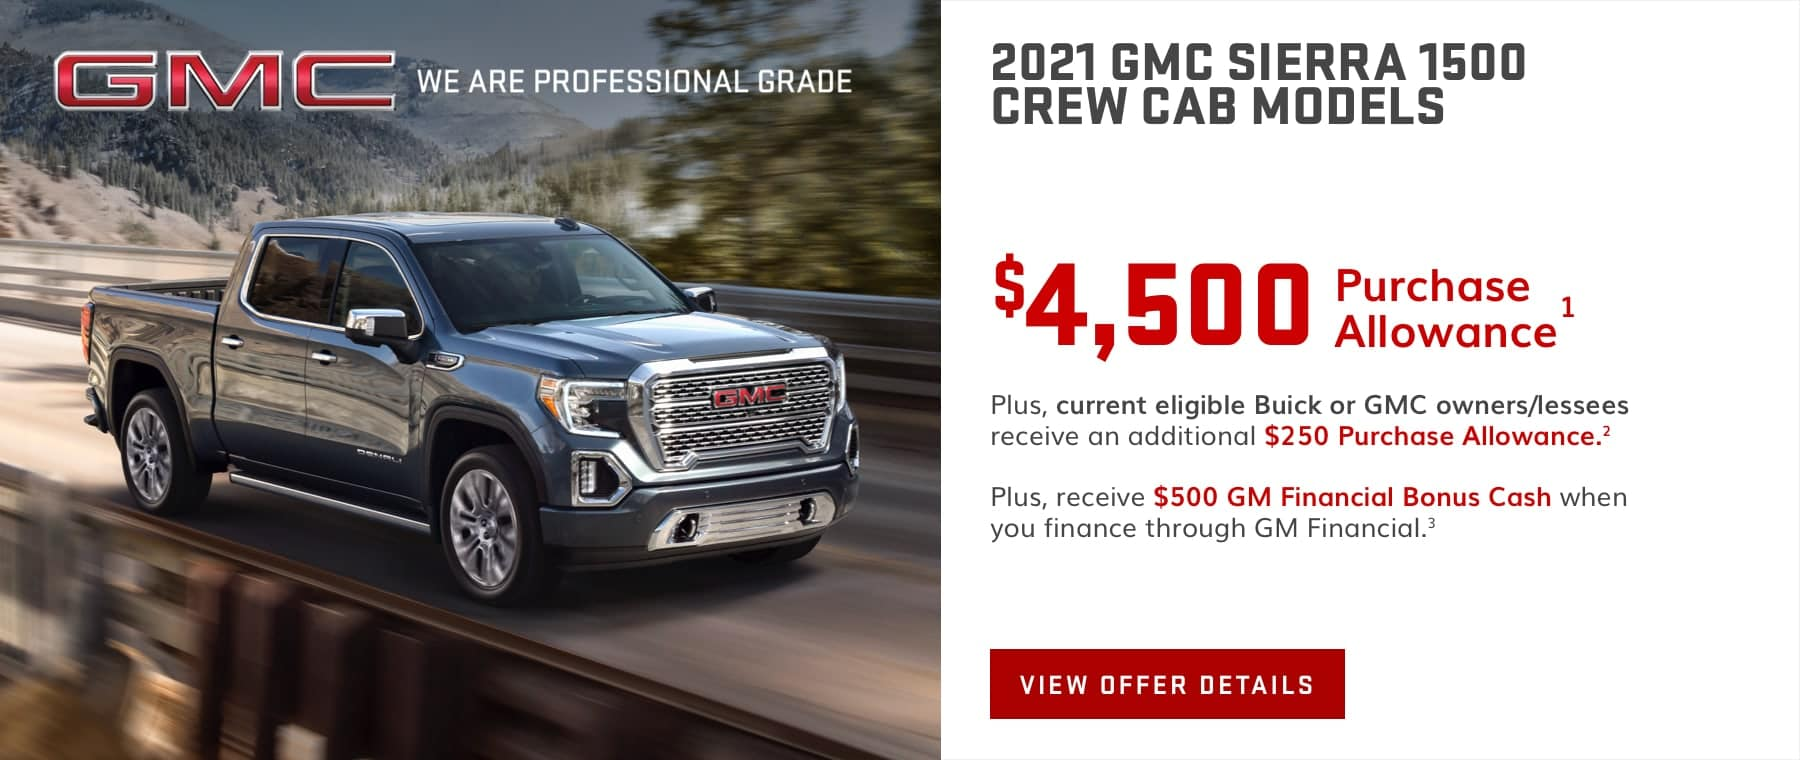 $4,500 Purchase Allowance.1 Plus, current eligible Buick or GMC owners/lessees receive an additional $250 Purchase Allowance.2 Plus, receive $500 GM Financial Bonus Cash when you finance through GM Financial.3